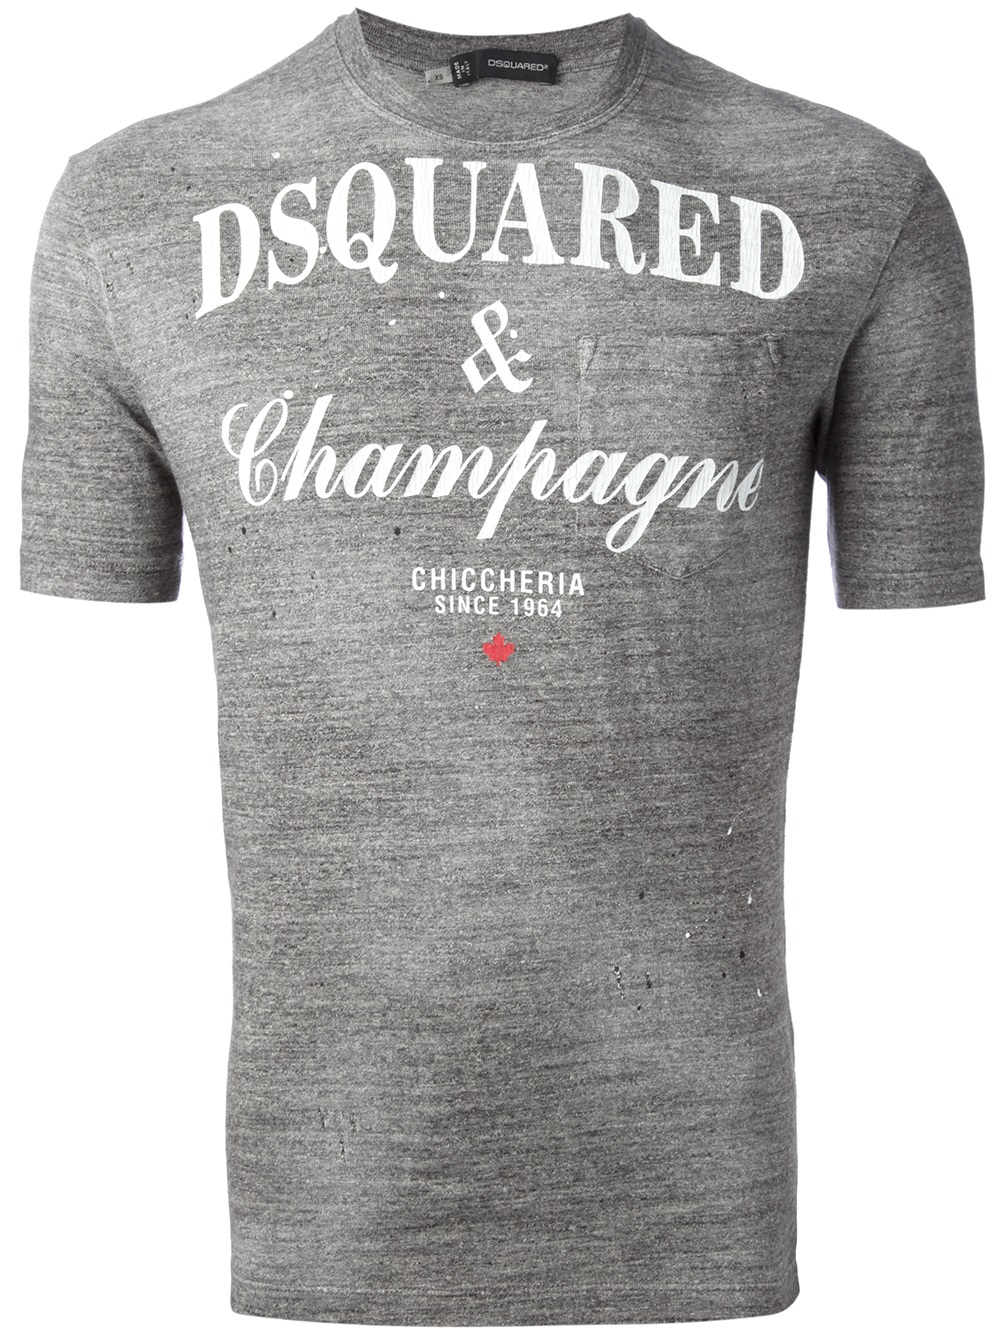 dsquared champagne tshirt in gray for men lyst. Black Bedroom Furniture Sets. Home Design Ideas